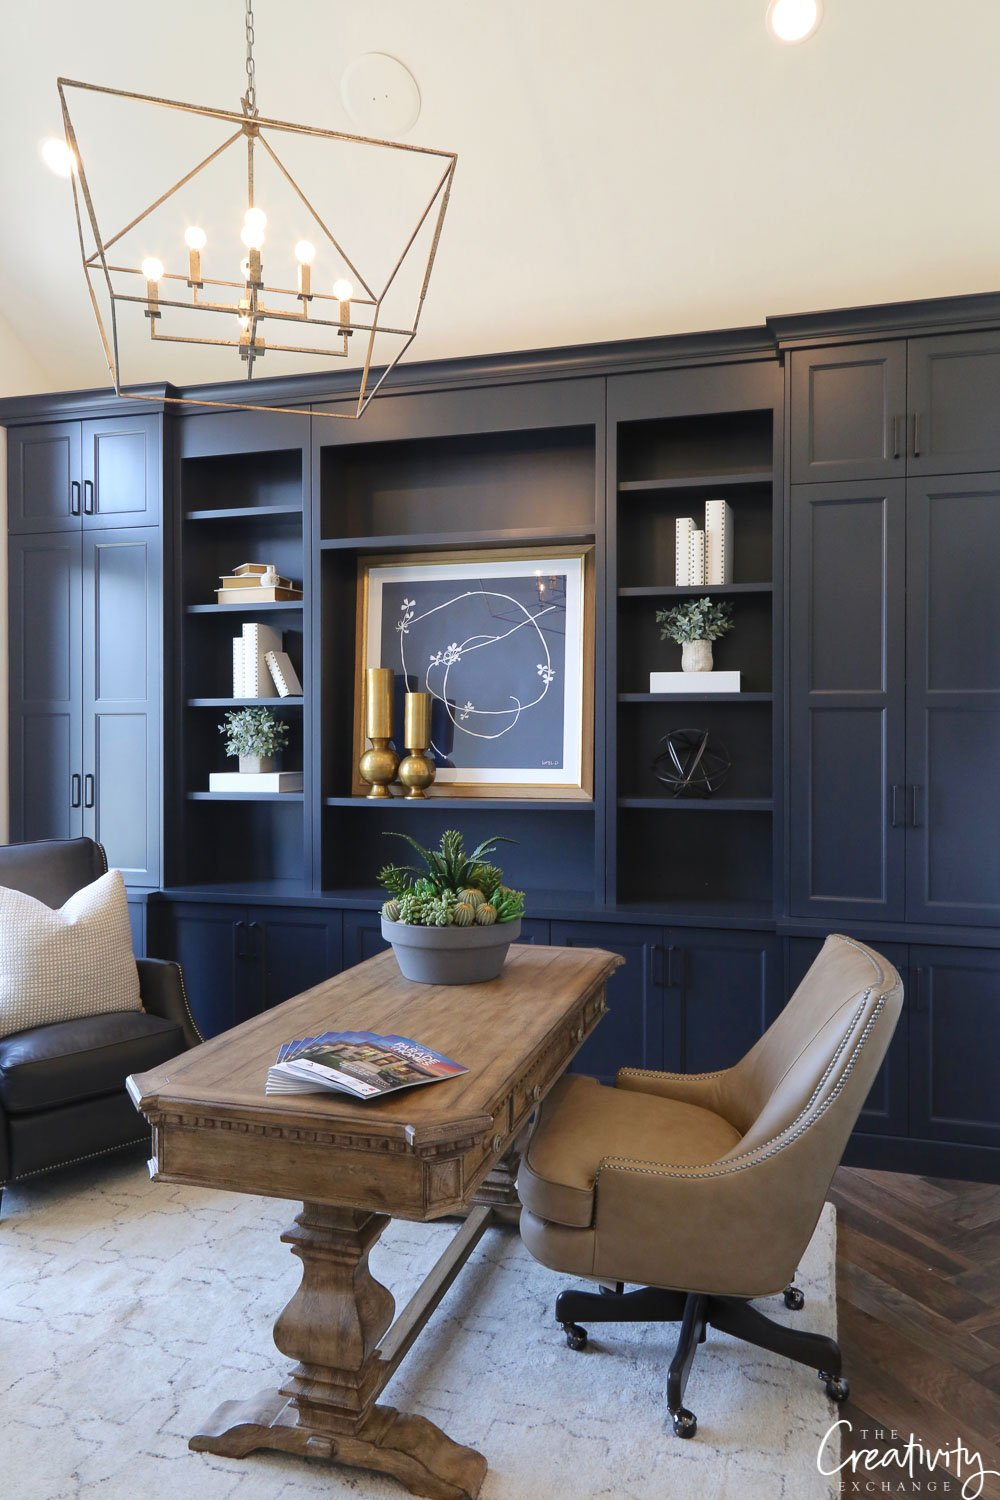 Deep rich blue painted cabinetry